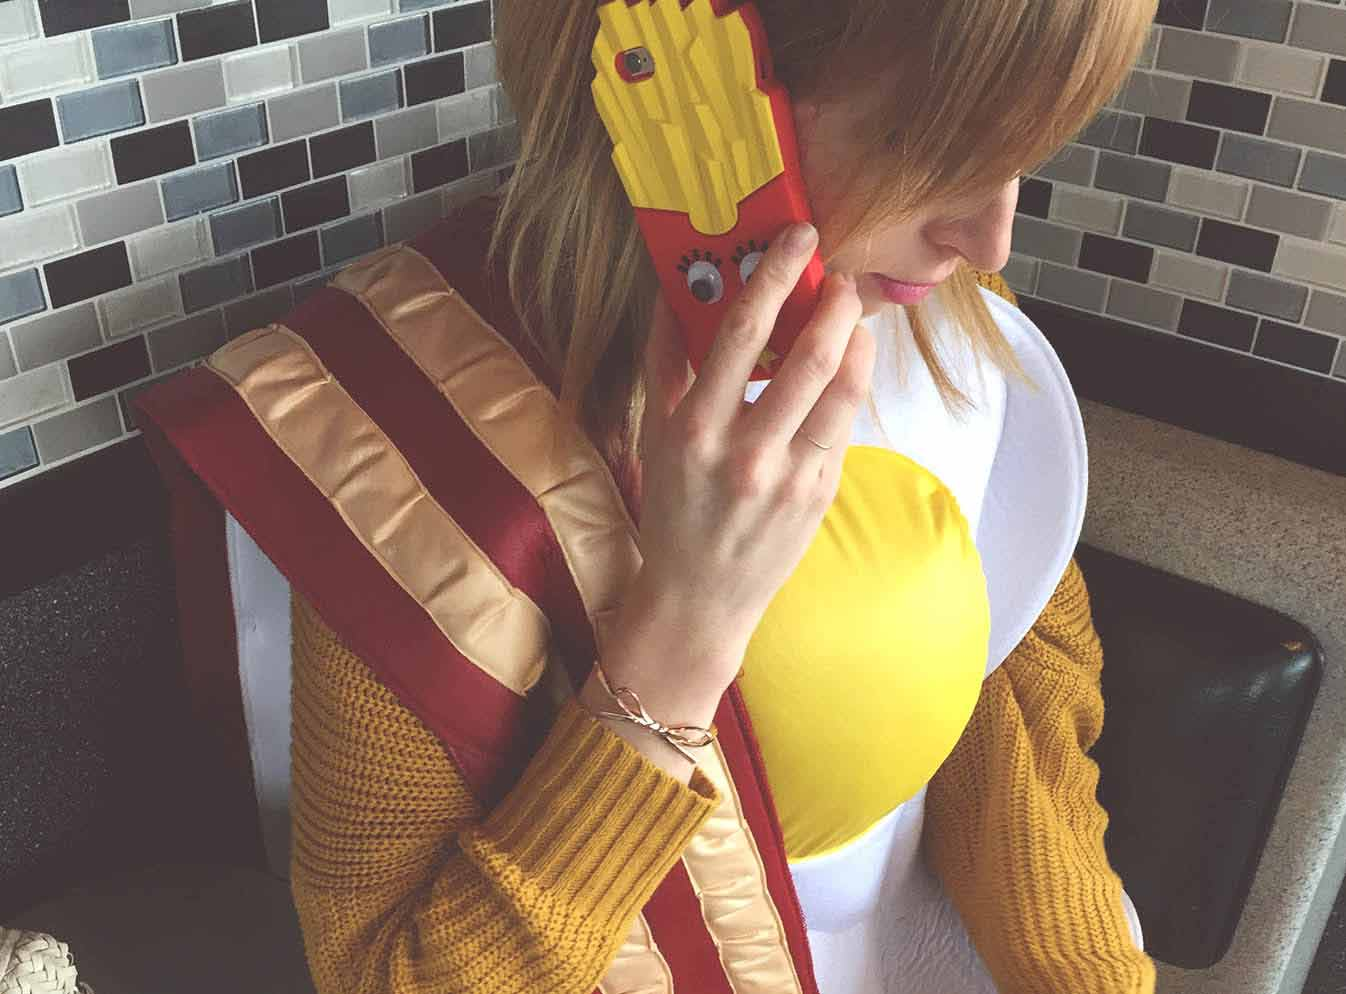 Girl in egg costume talking on mobile phone with french fry case